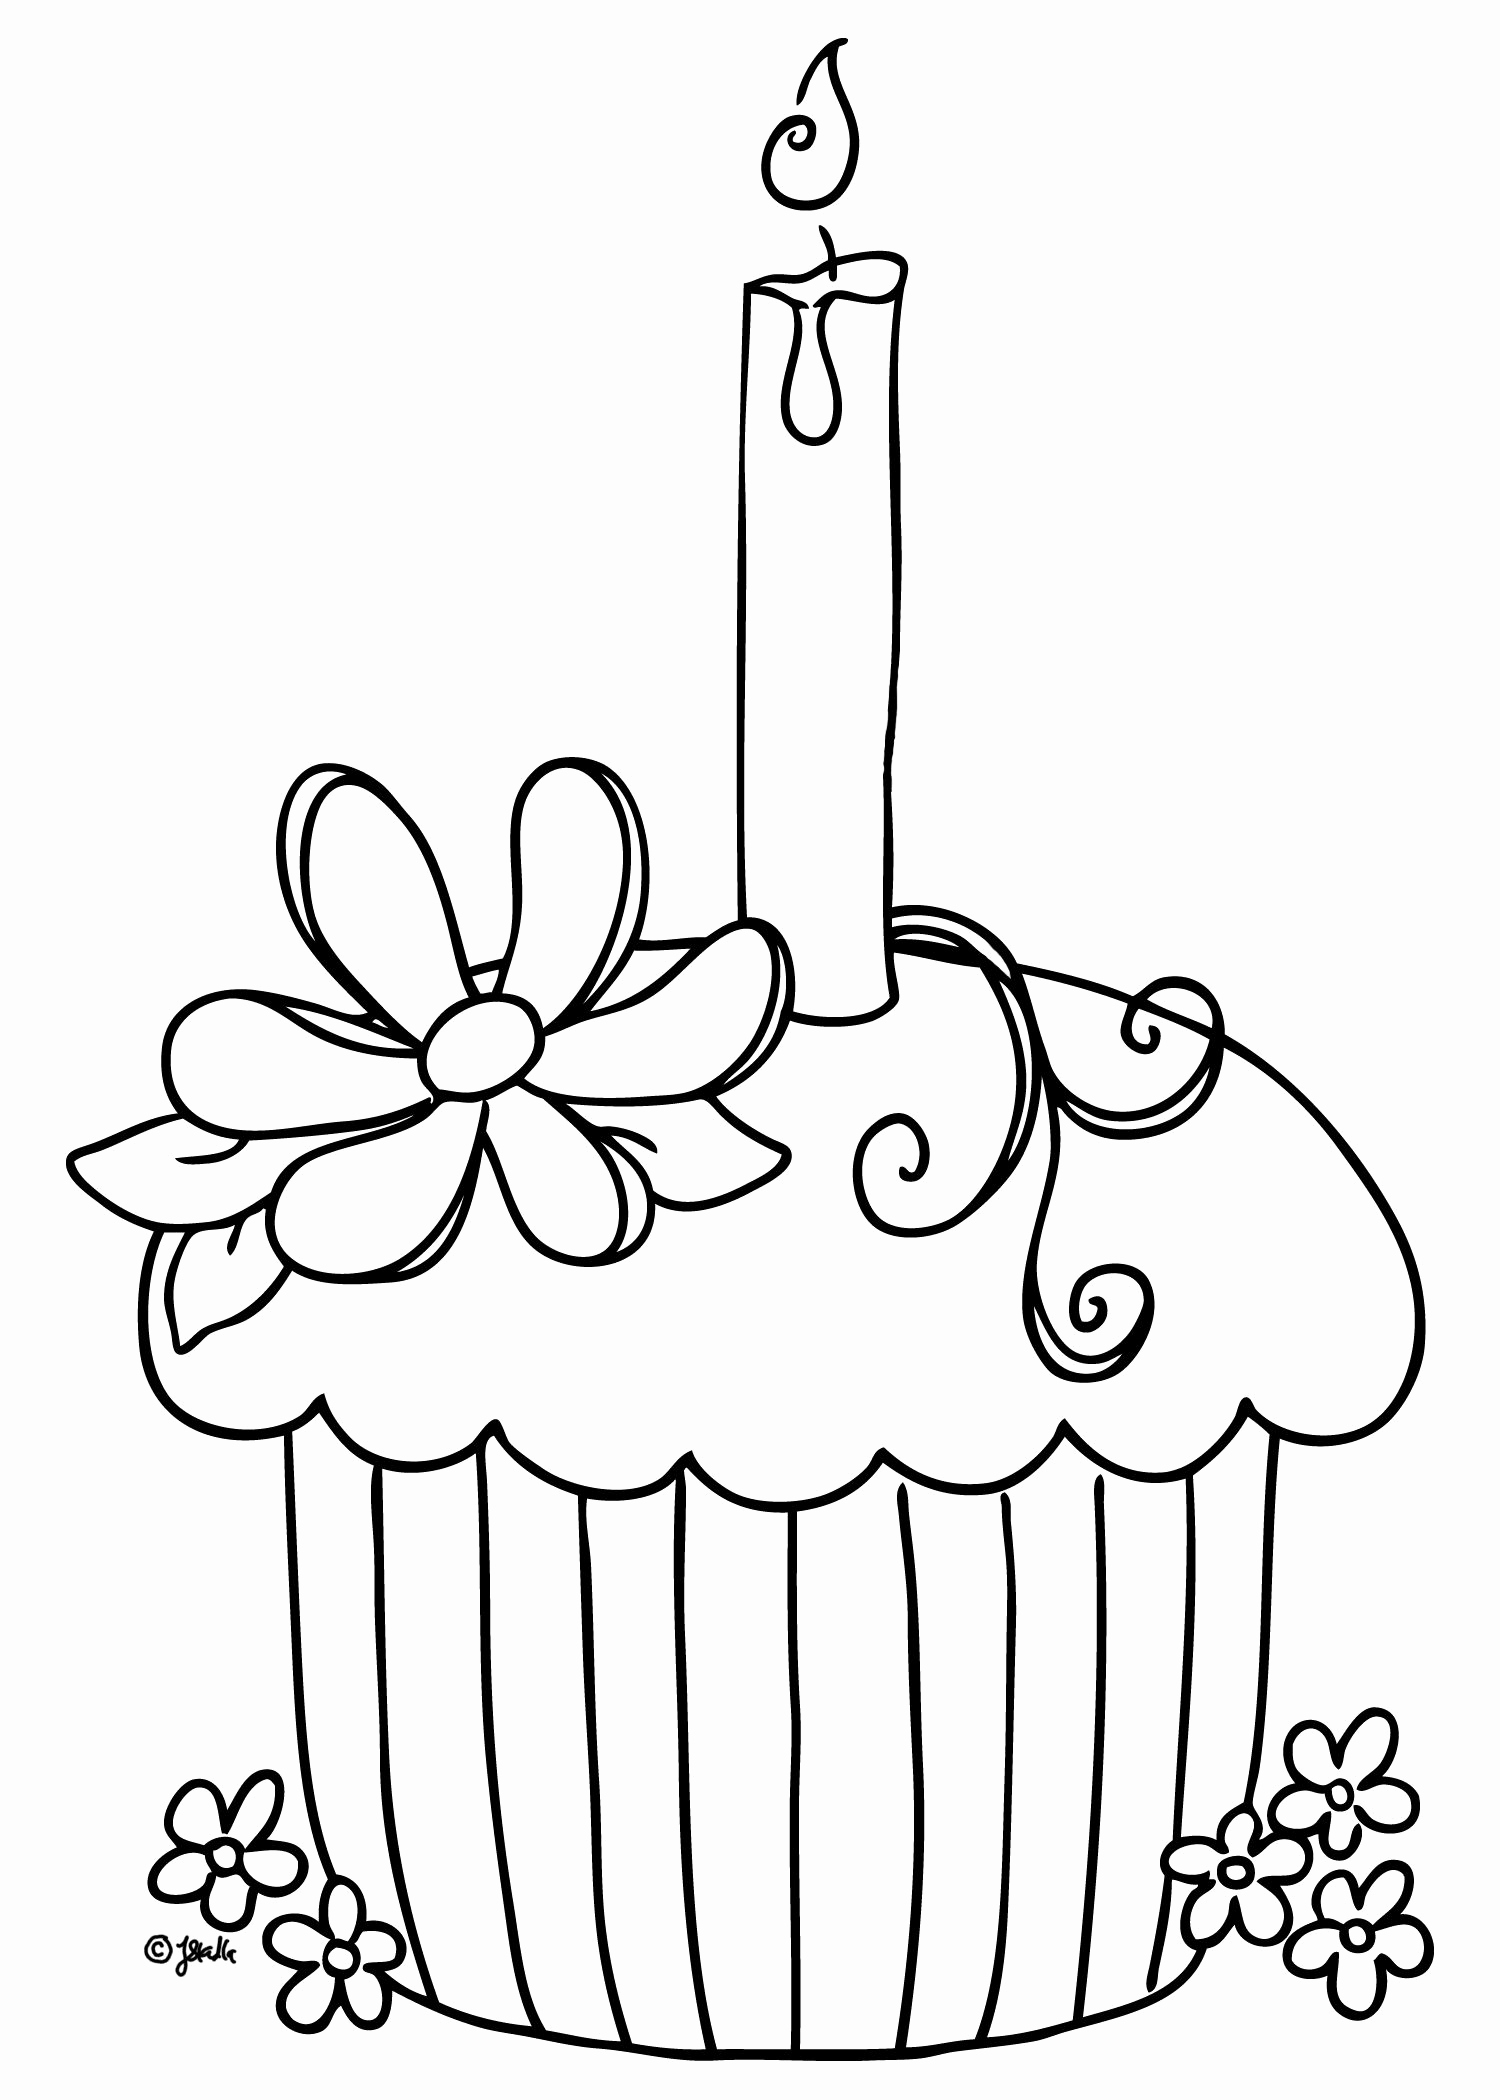 happy birthday cupcake coloring pages ; coloring-birthday-cards-luxury-cute-happy-birthday-cupcake-coloring-pages-happy-birthday-disney-of-coloring-birthday-cards